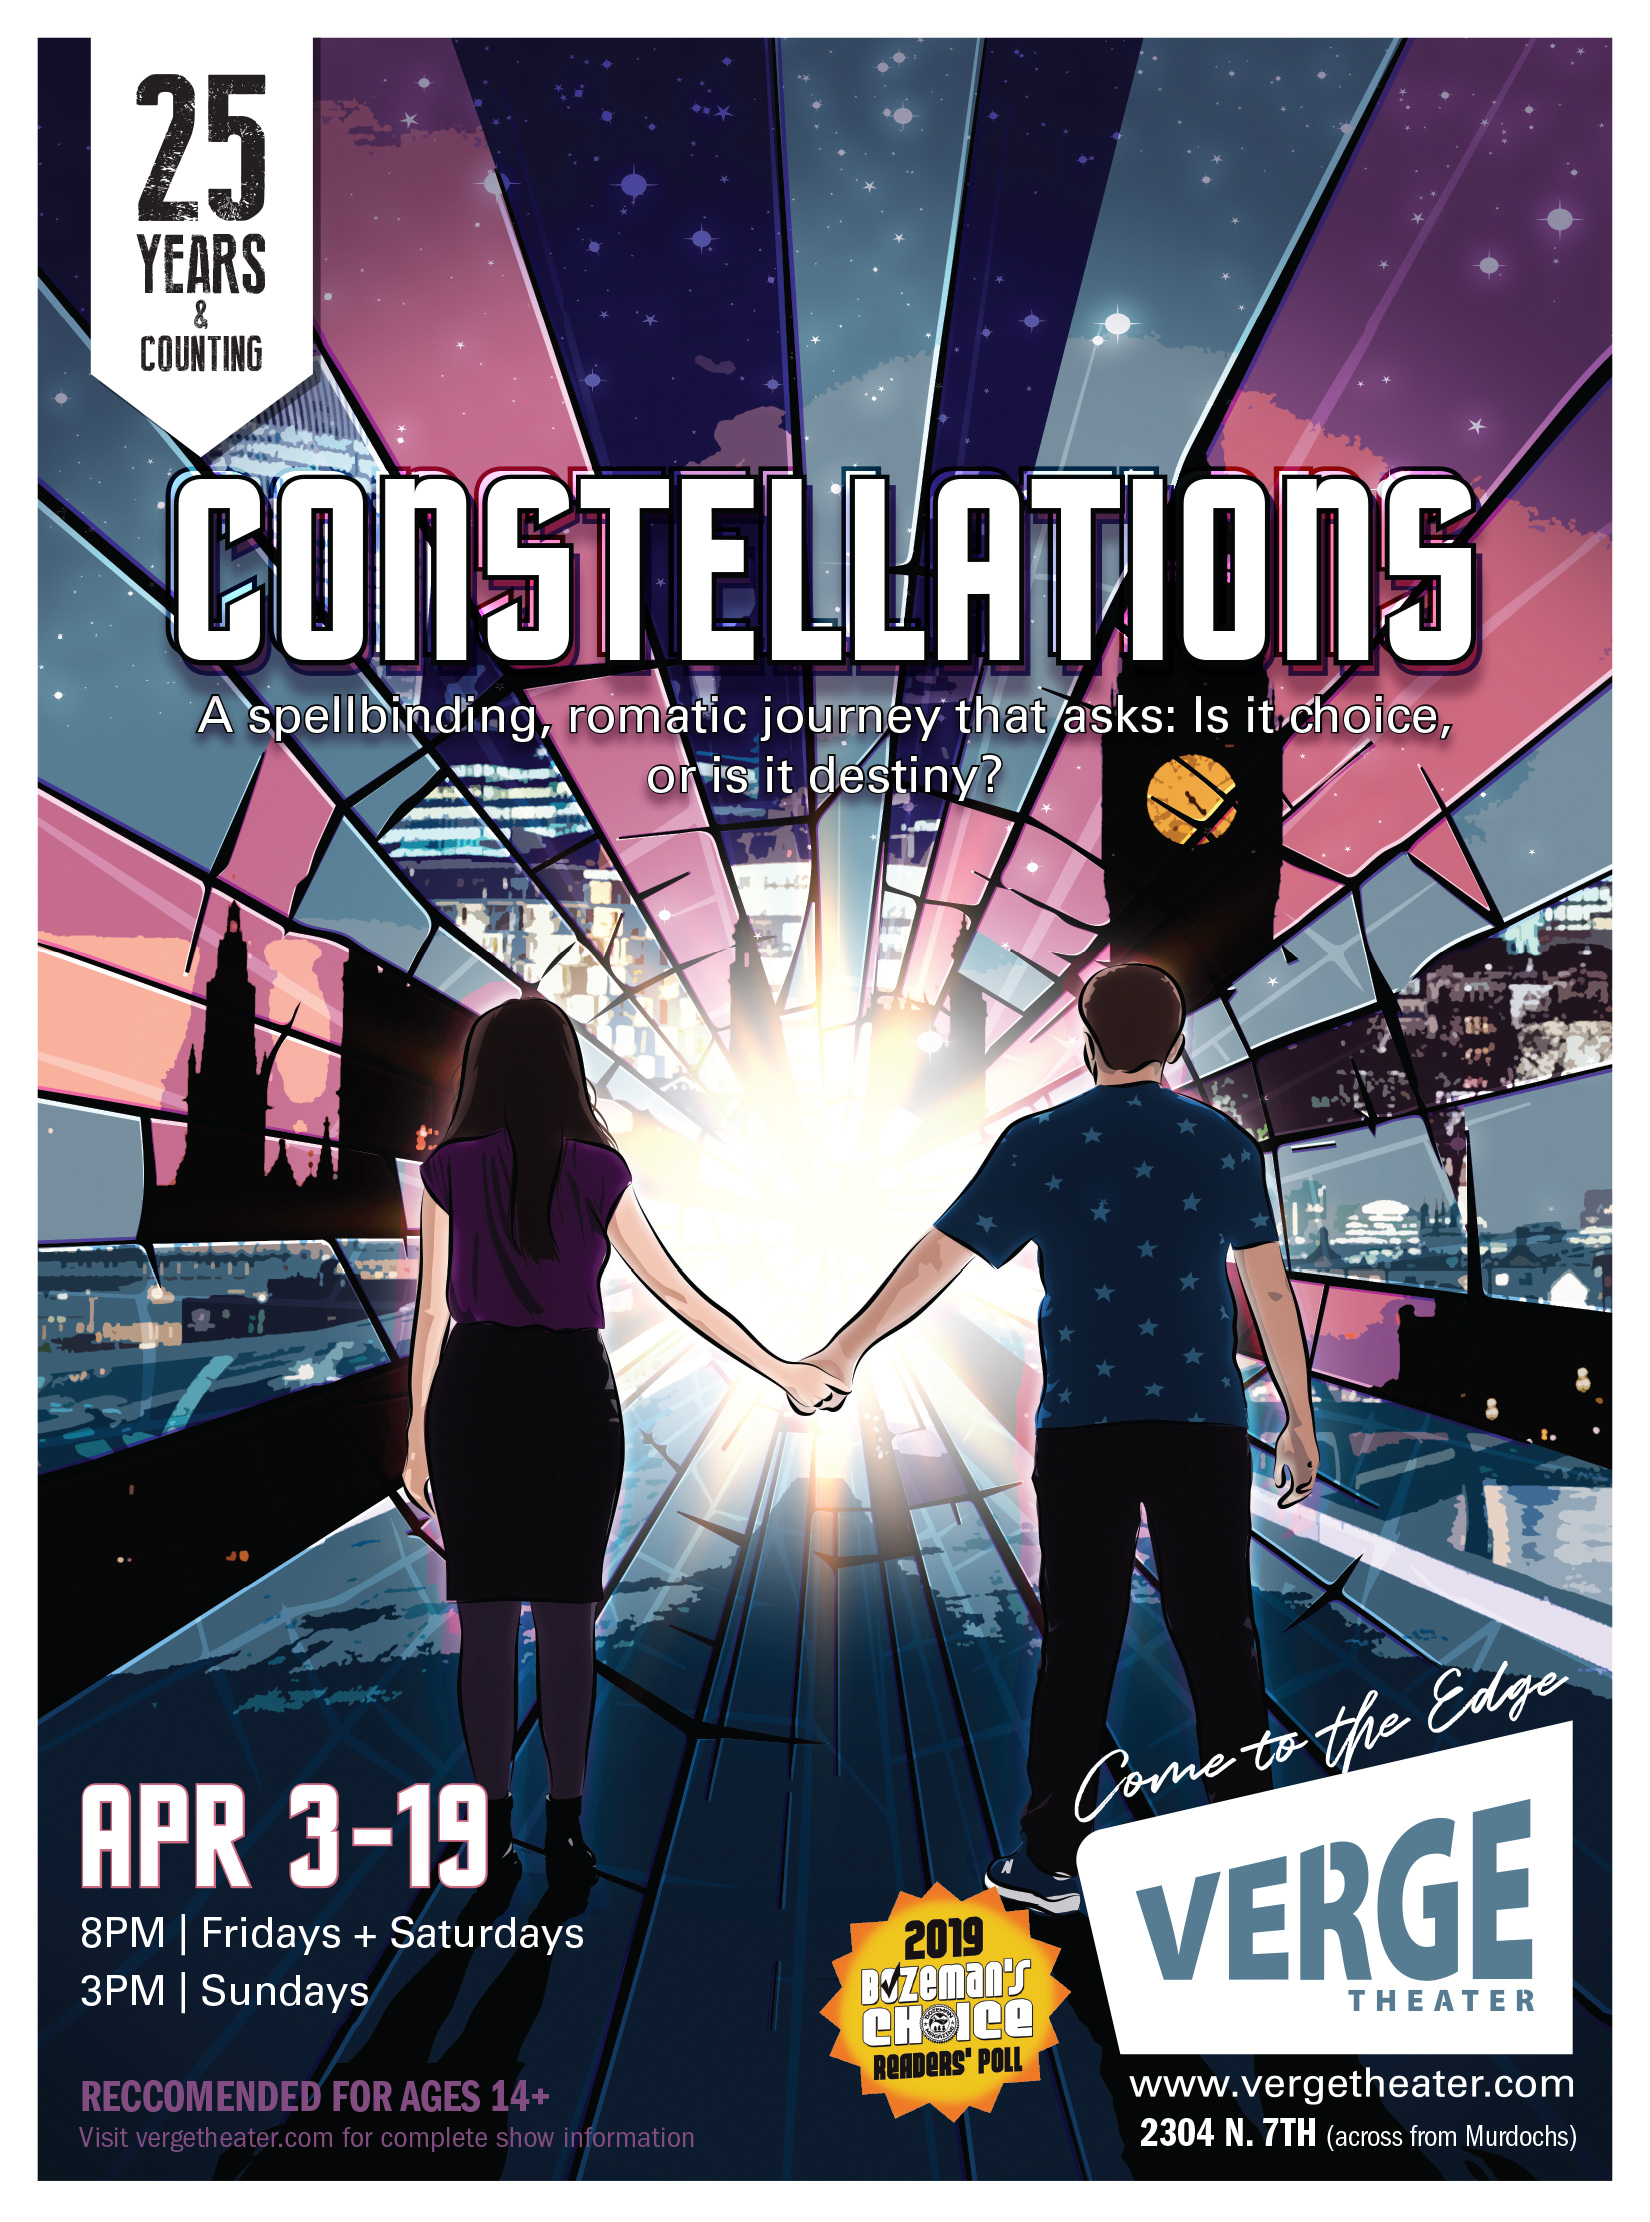 Constellations Poster 11x17 for website.jpg